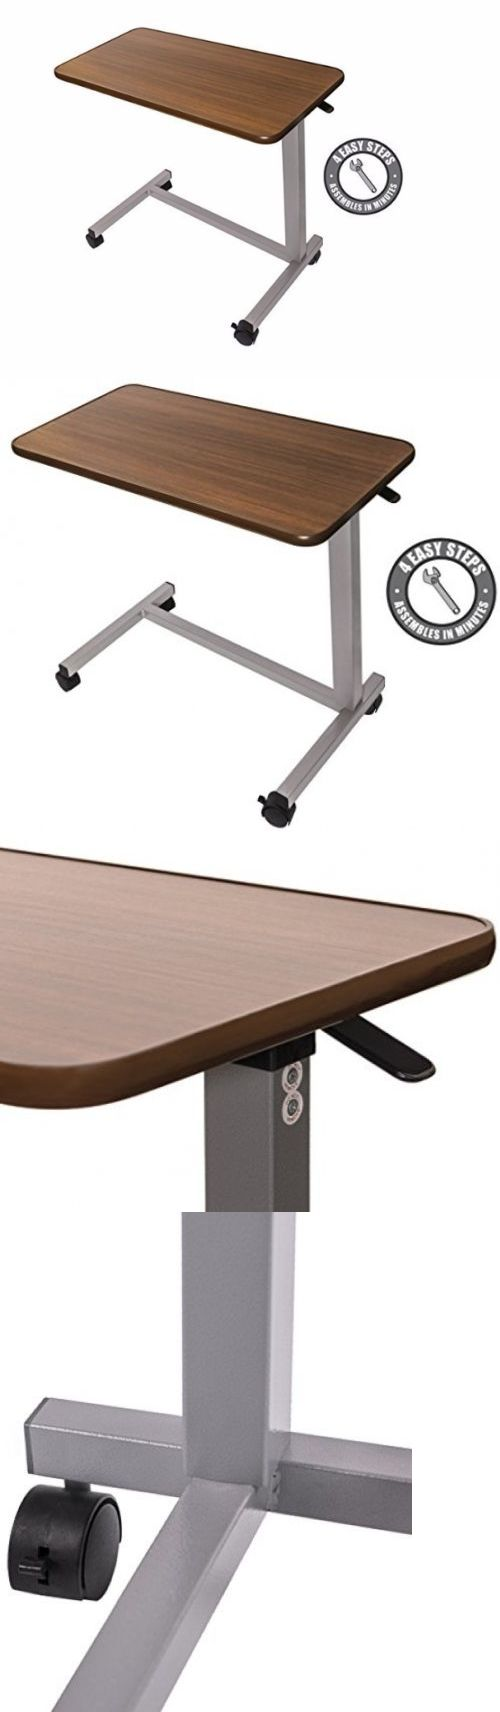 Bed and Chair Tables: Rolling Overbed Table Sofa Tray Adjustable Side Hospital Laptop Desk Non Slip -> BUY IT NOW ONLY: $75.67 on eBay!